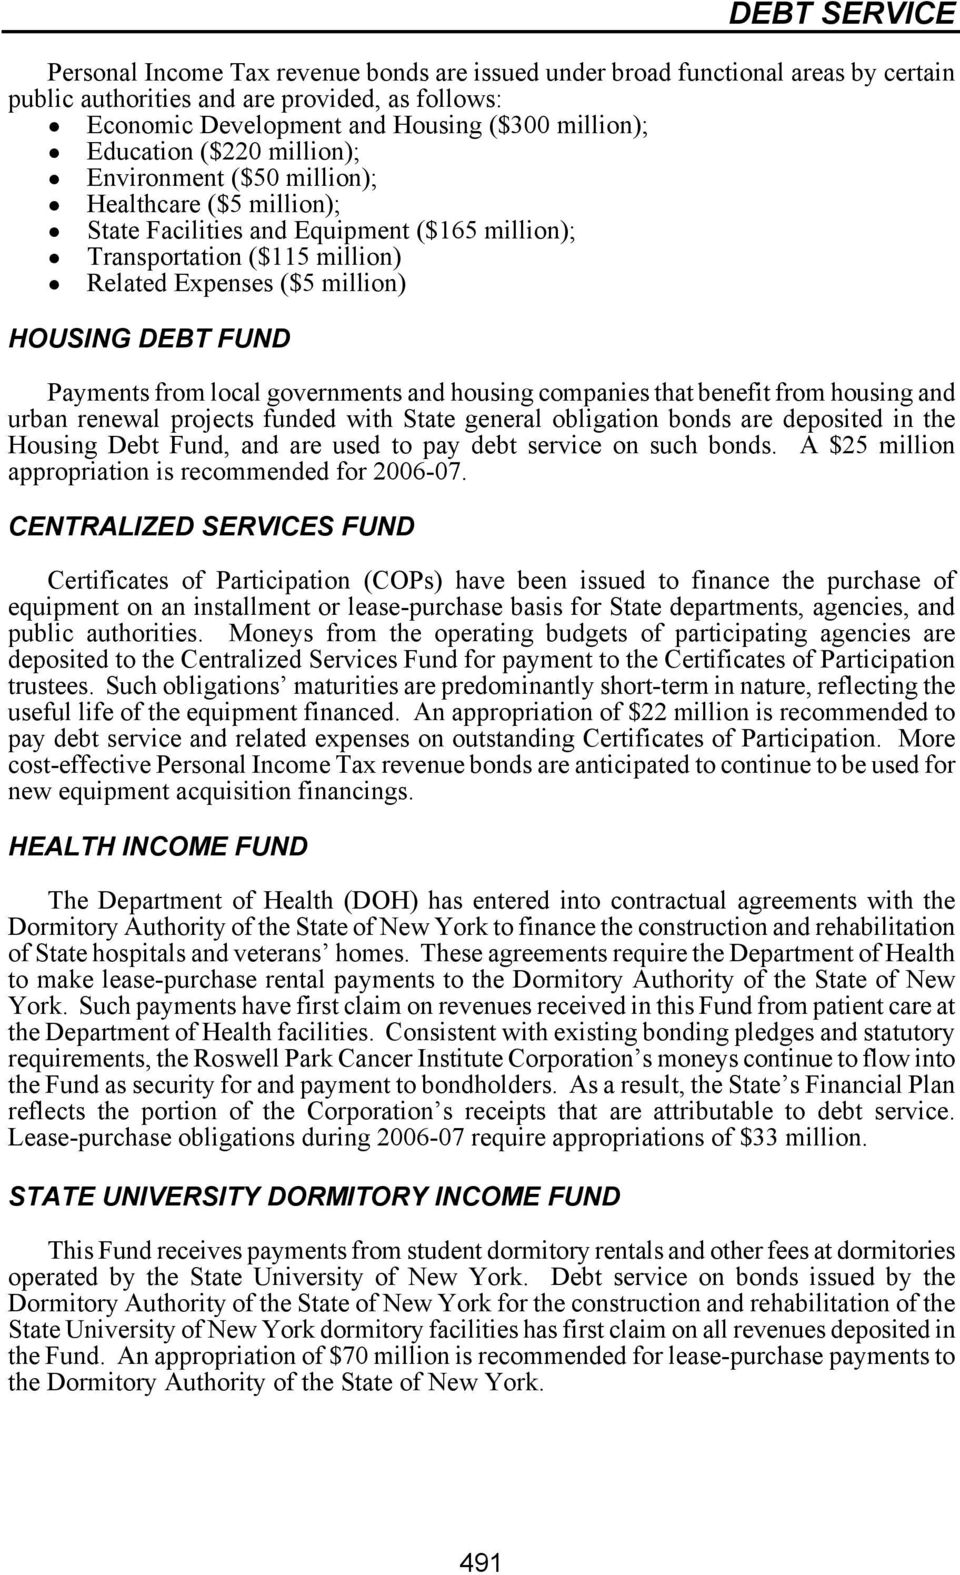 from local governments and housing companies that benefit from housing and urban renewal projects funded with State general obligation bonds are deposited in the Housing Debt Fund, and are used to